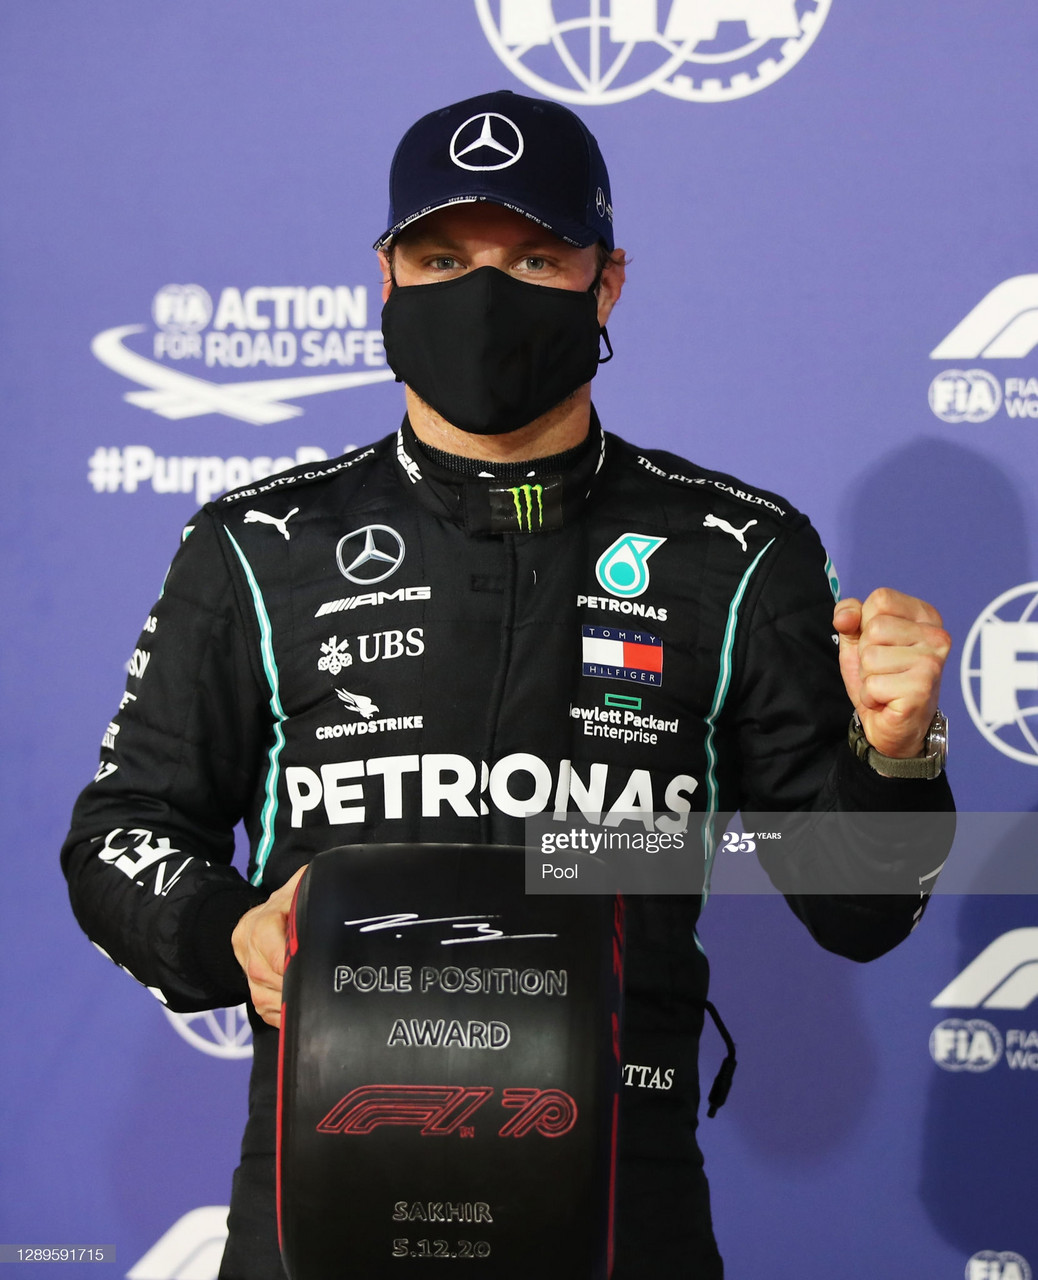 Sakhir GP - Russell doesn't beat Bottas for first place in his first Q3